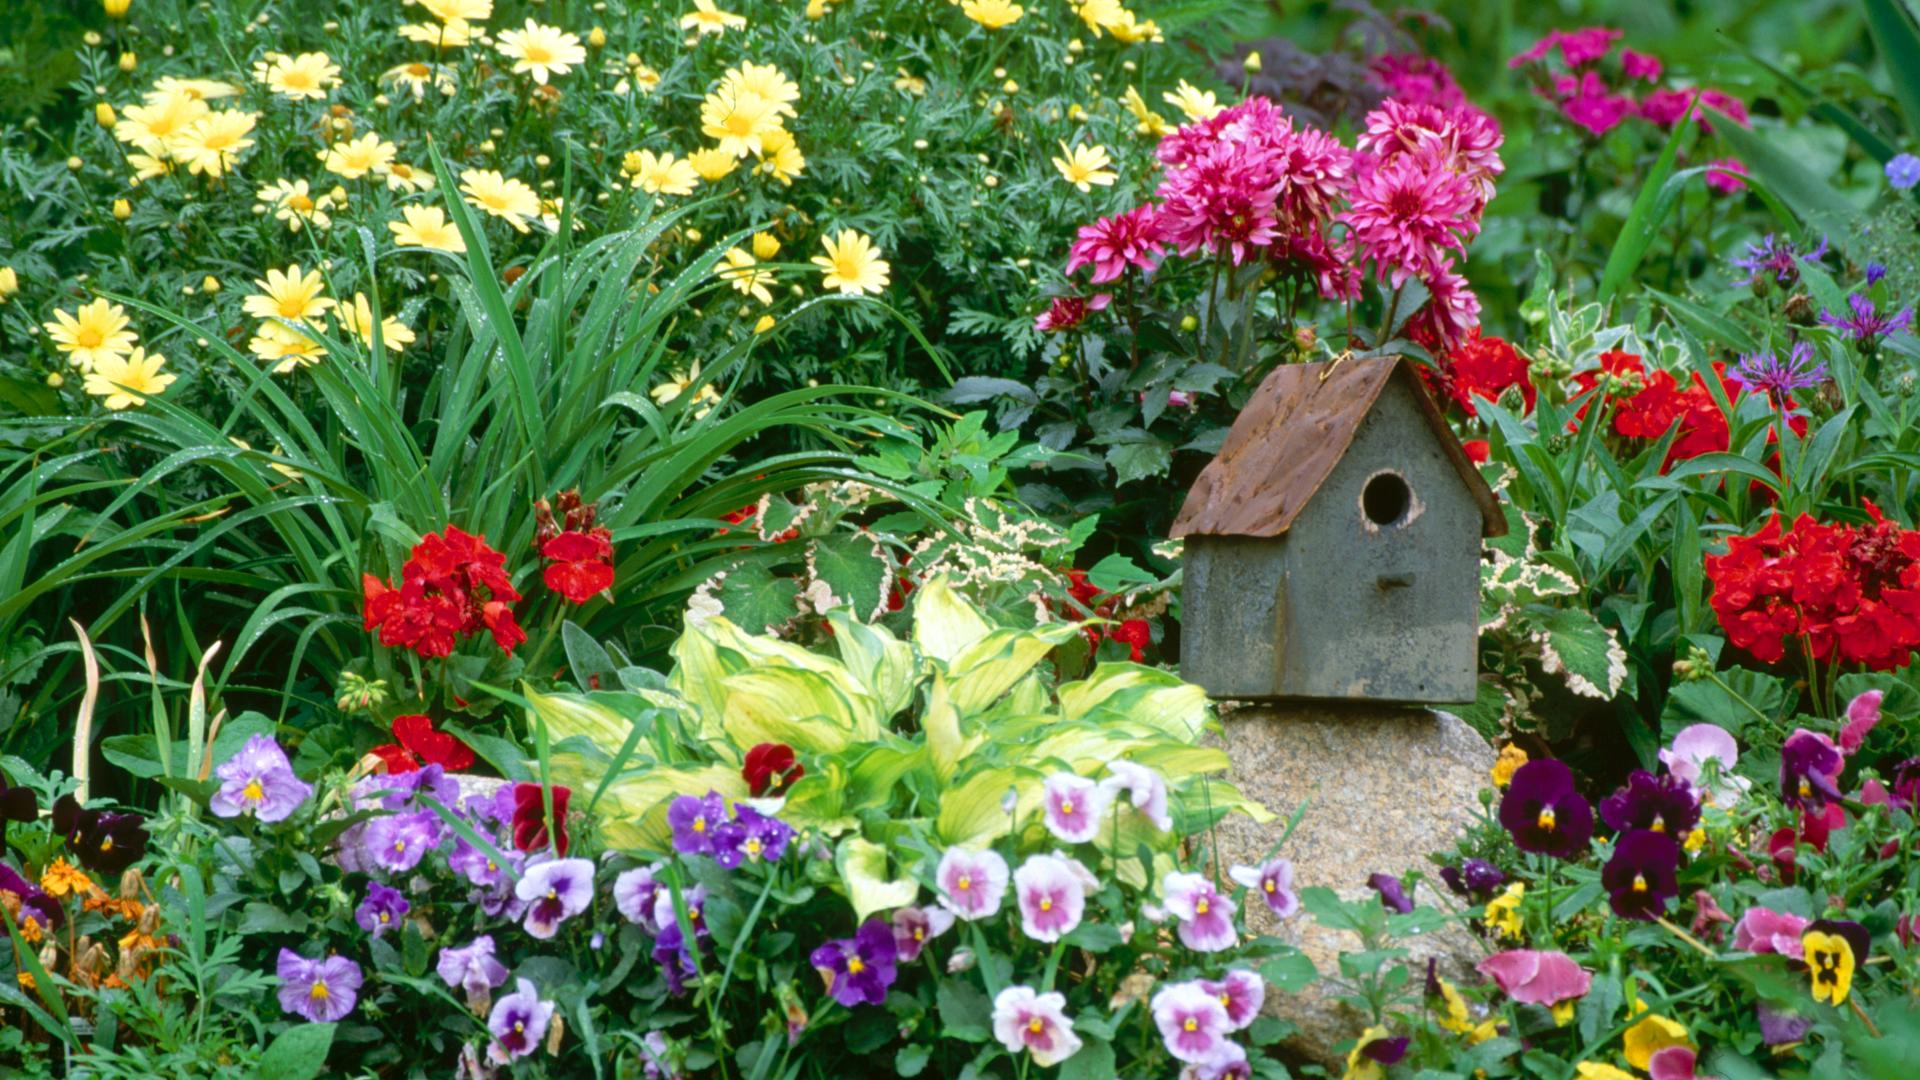 Home Flower Garden - Photography Wallpapers